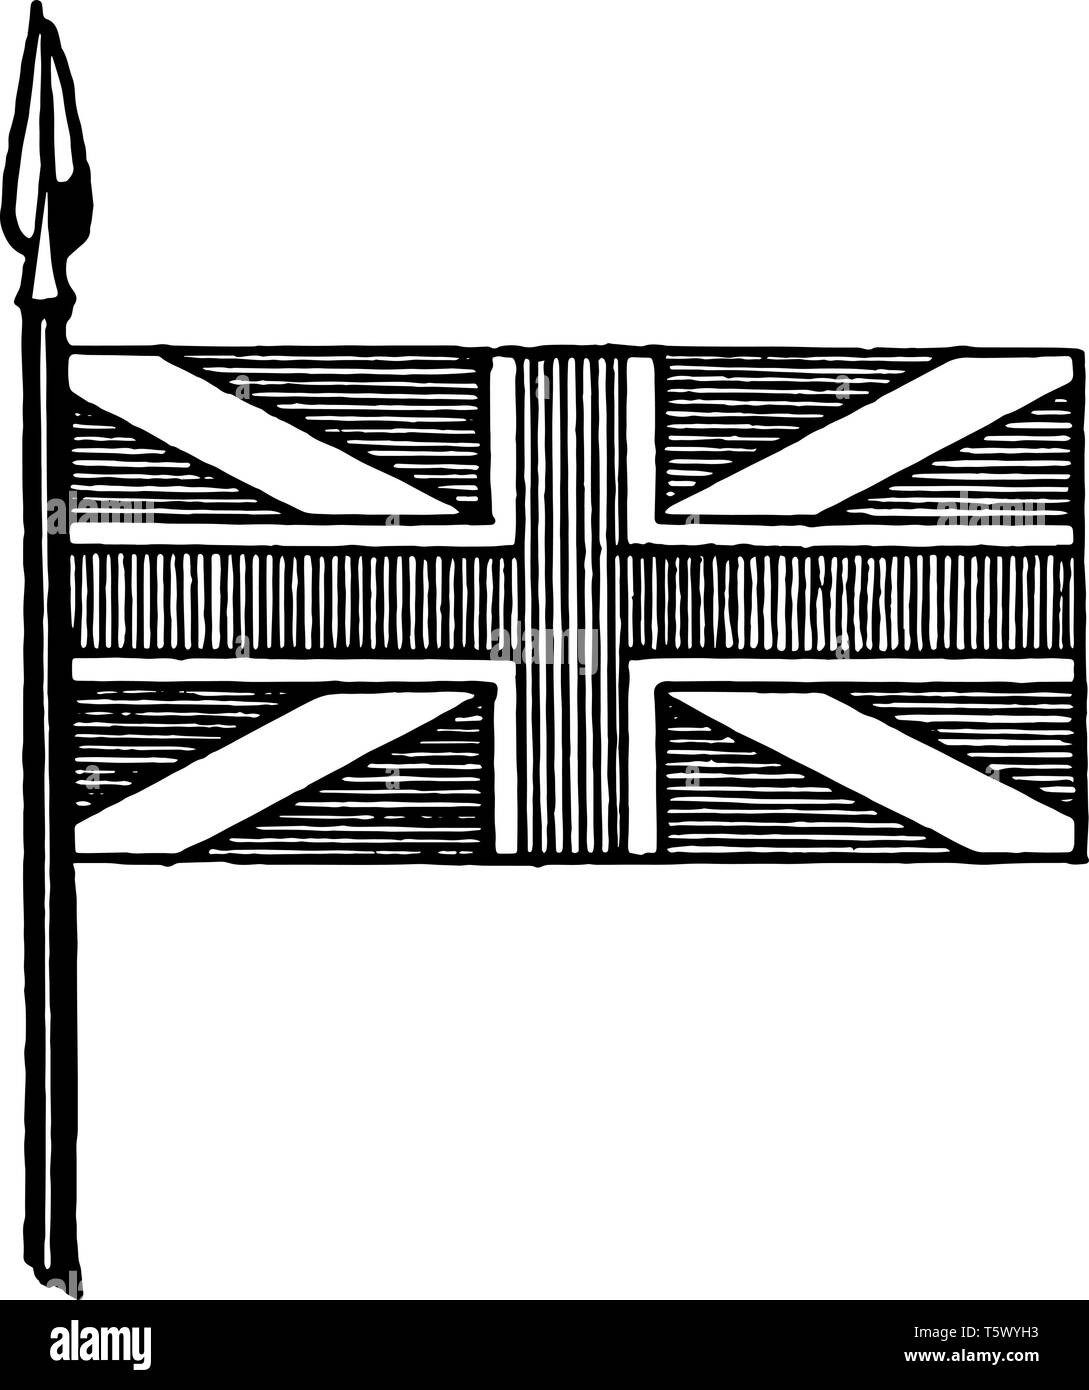 Union Flag: Crosses of St. George, St. Andrew, this flag has cross of vertical stripes with outline superimposed on white diagonal cross, and horizont - Stock Vector